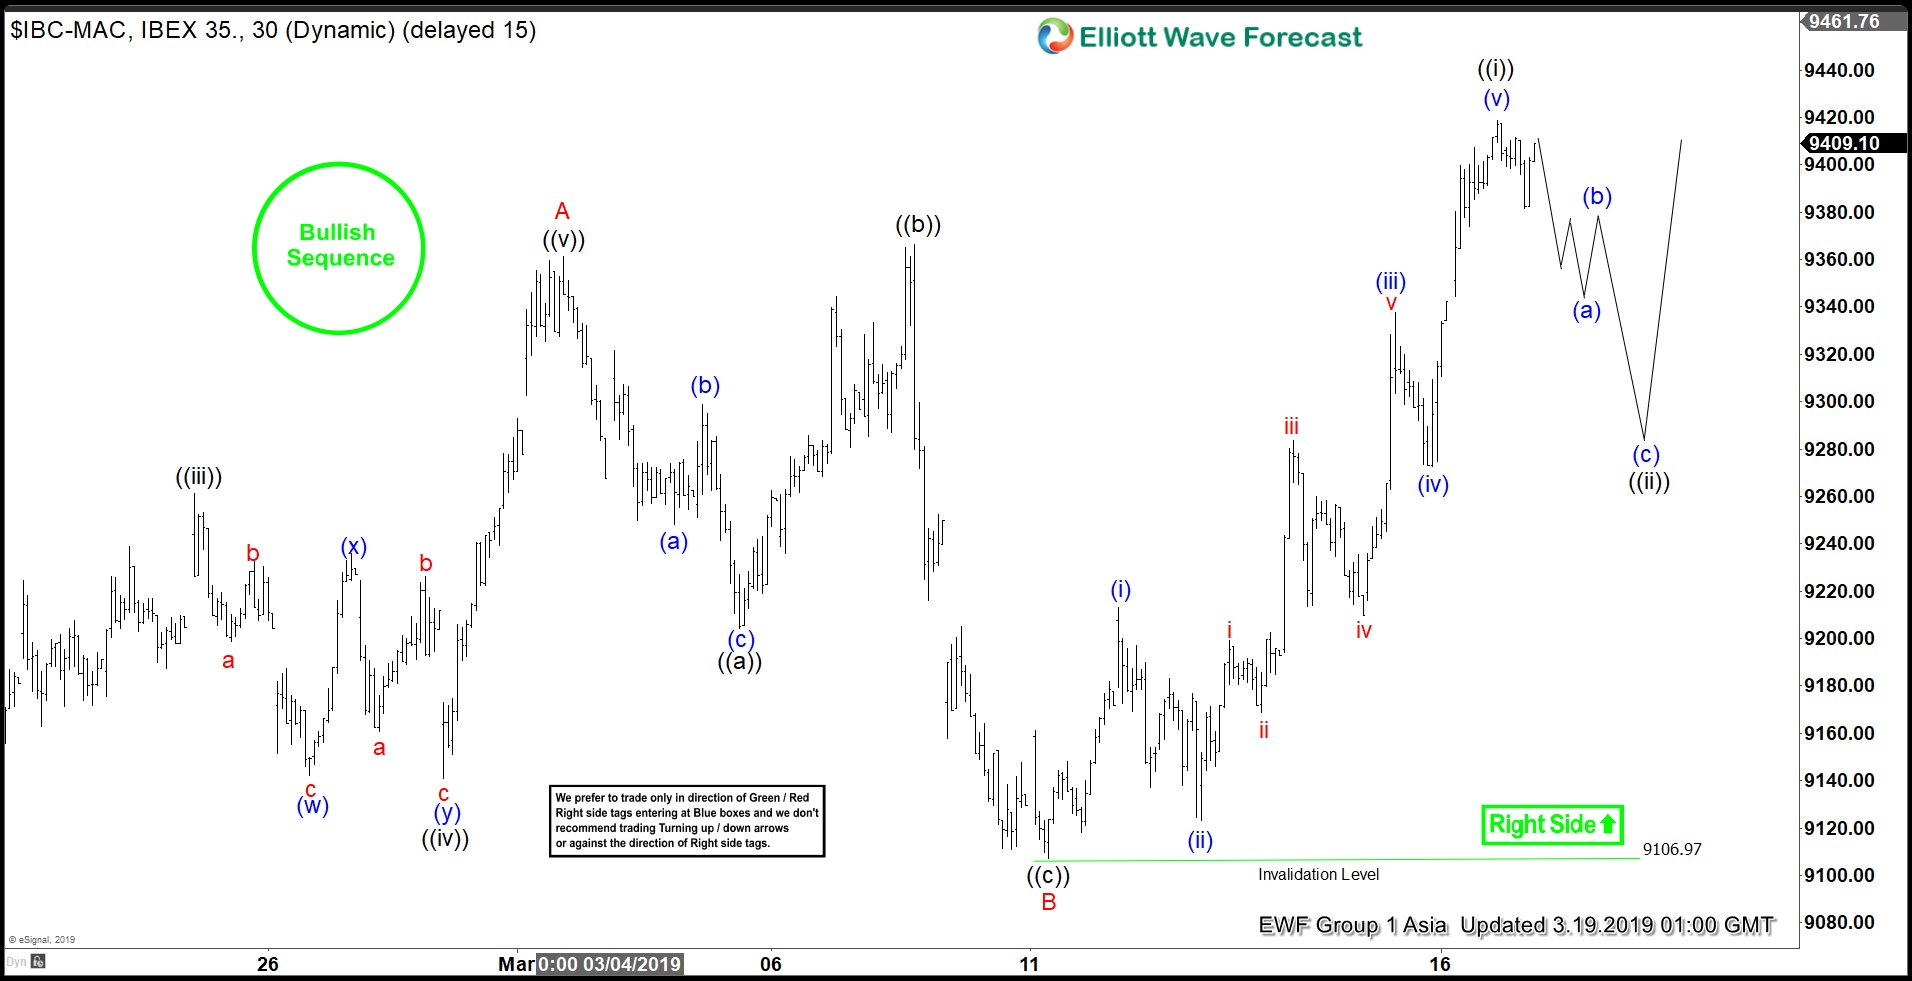 Elliott Wave View: IBEX Shows Bullish Structure